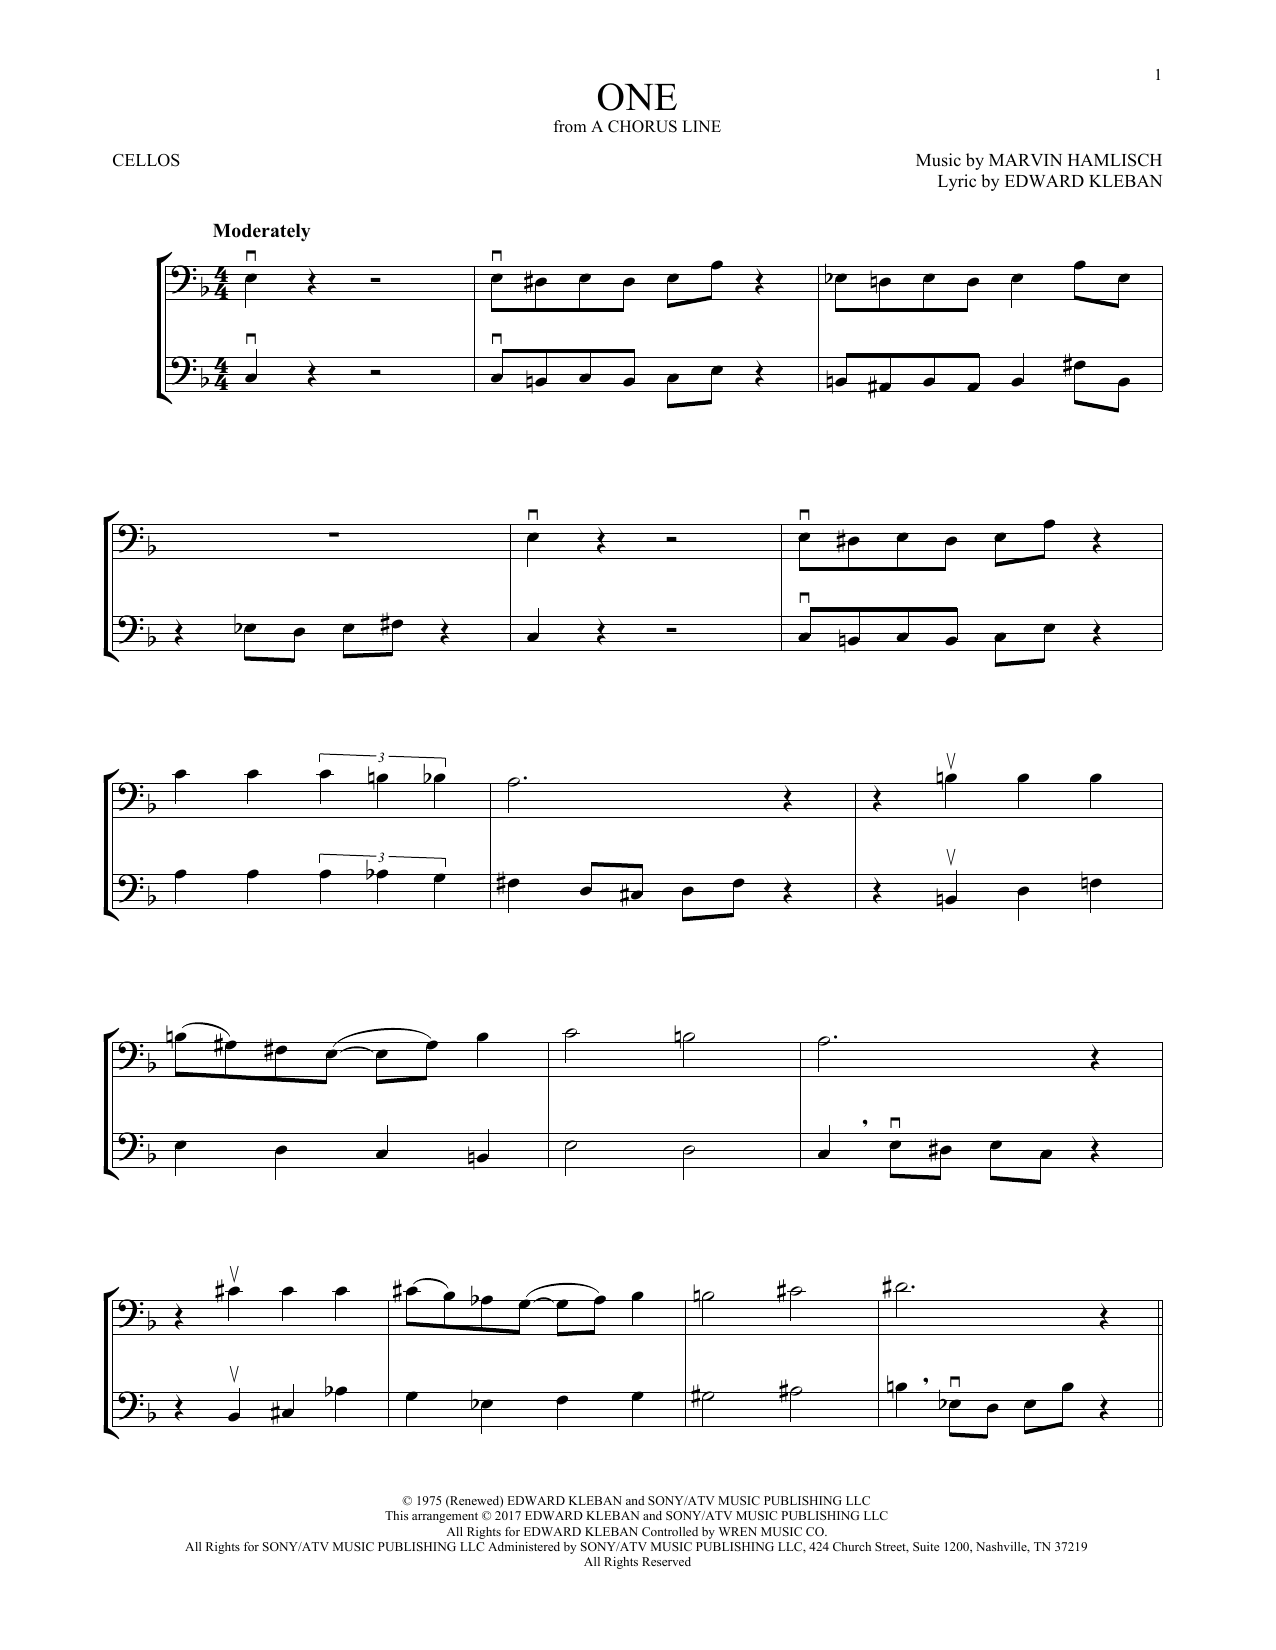 Marvin Hamlisch One (from A Chorus Line) sheet music notes and chords. Download Printable PDF.